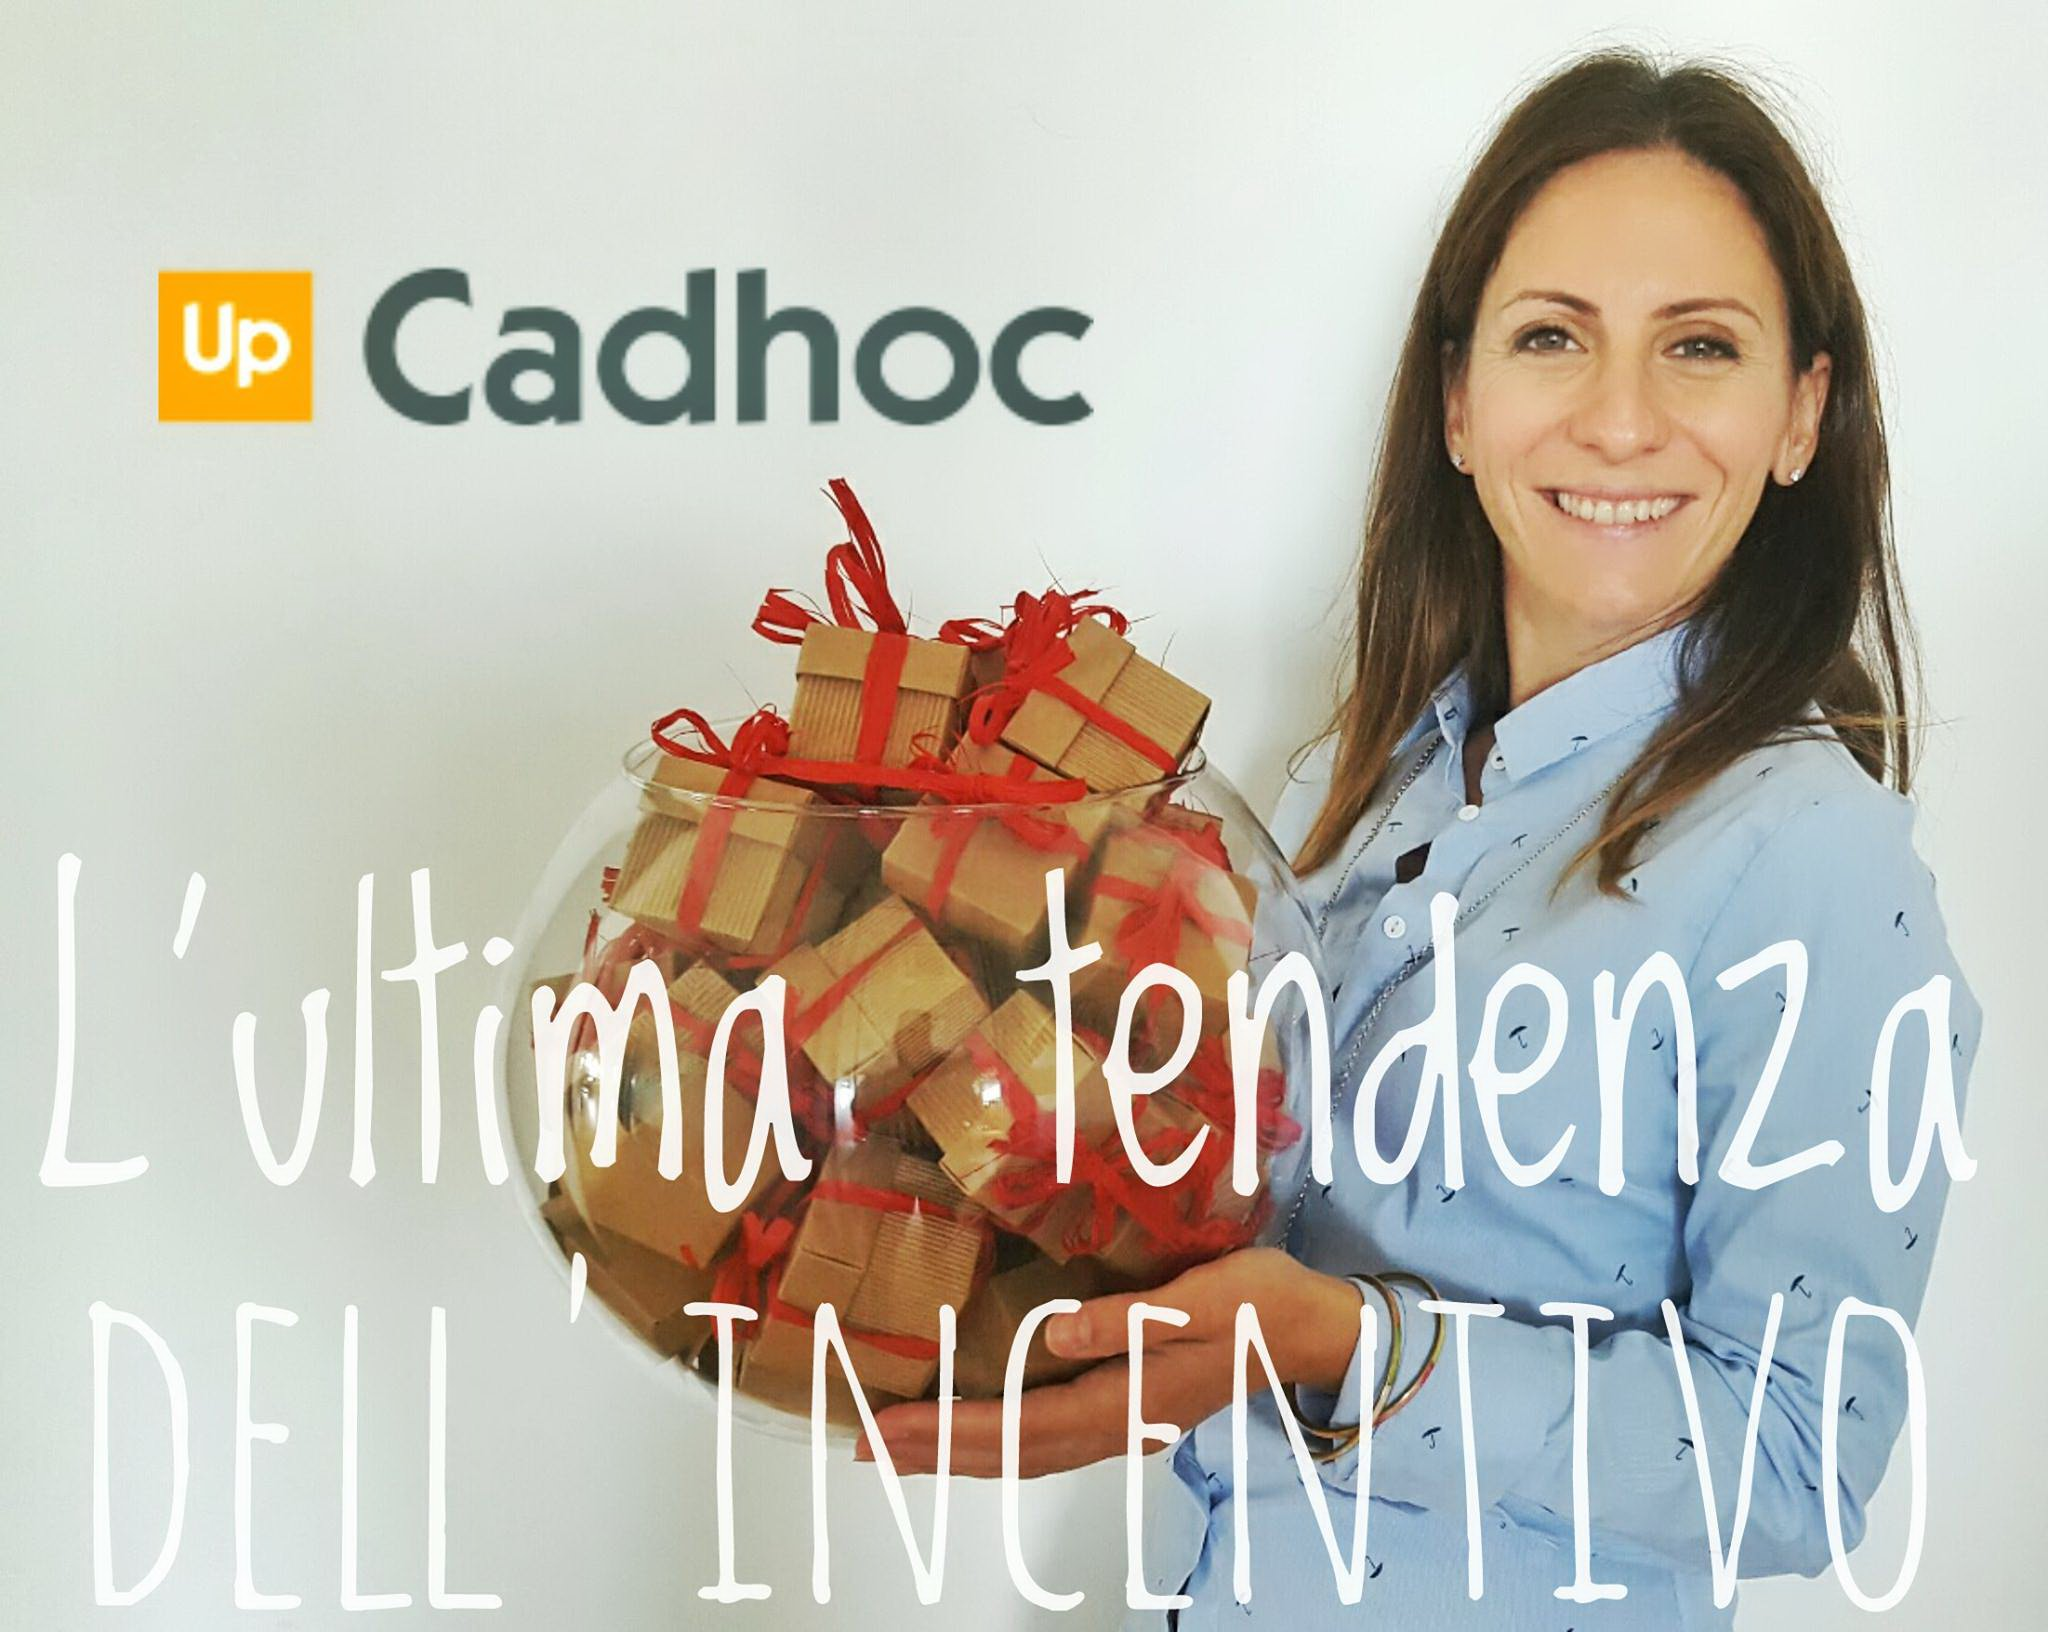 Cadhoc, l'ultima tendenza dell'incentivo